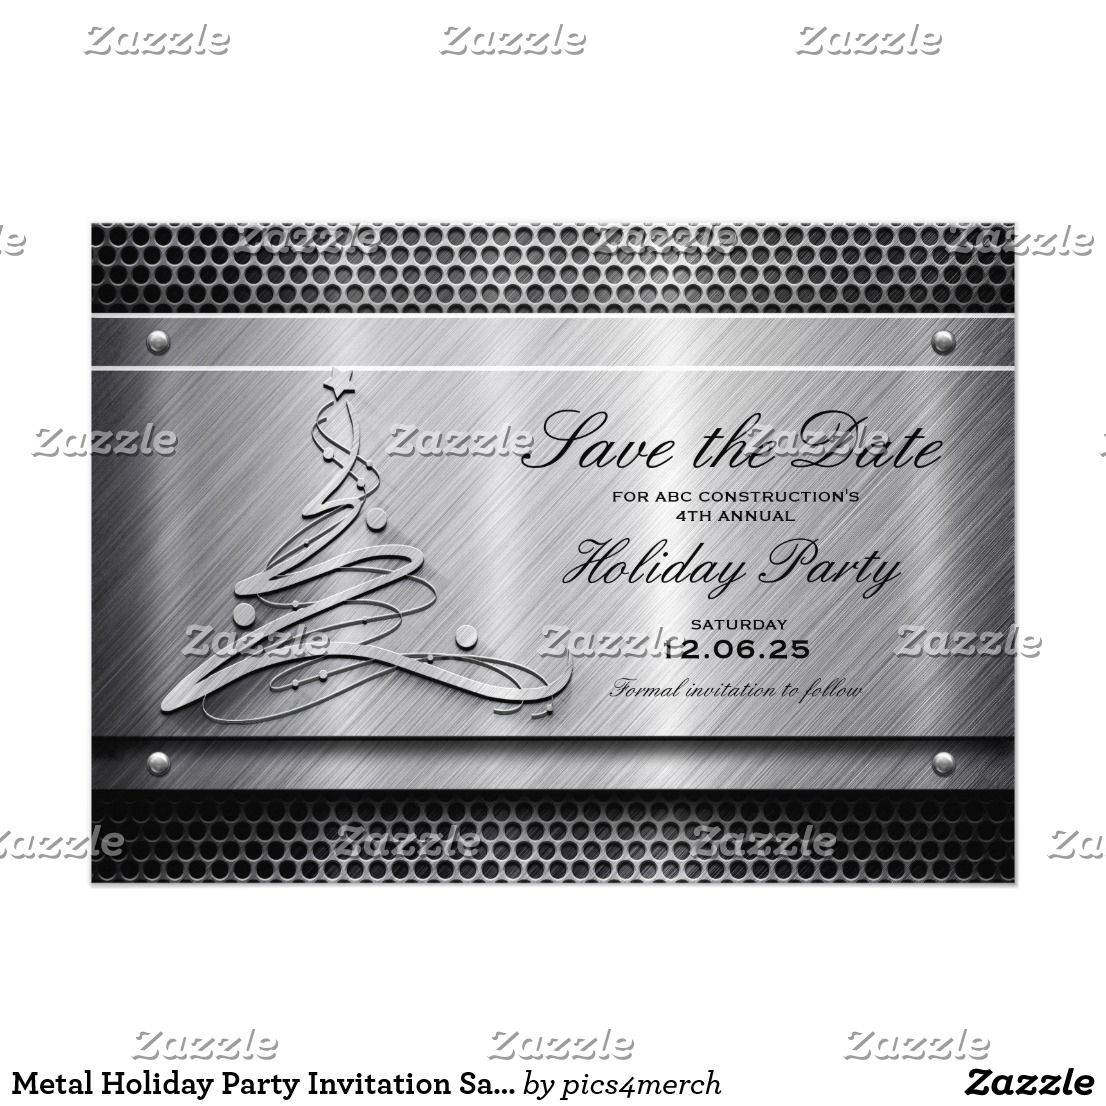 Metal holiday party invitation save the date corporateoffice metal holiday party invitation save the date stopboris Gallery